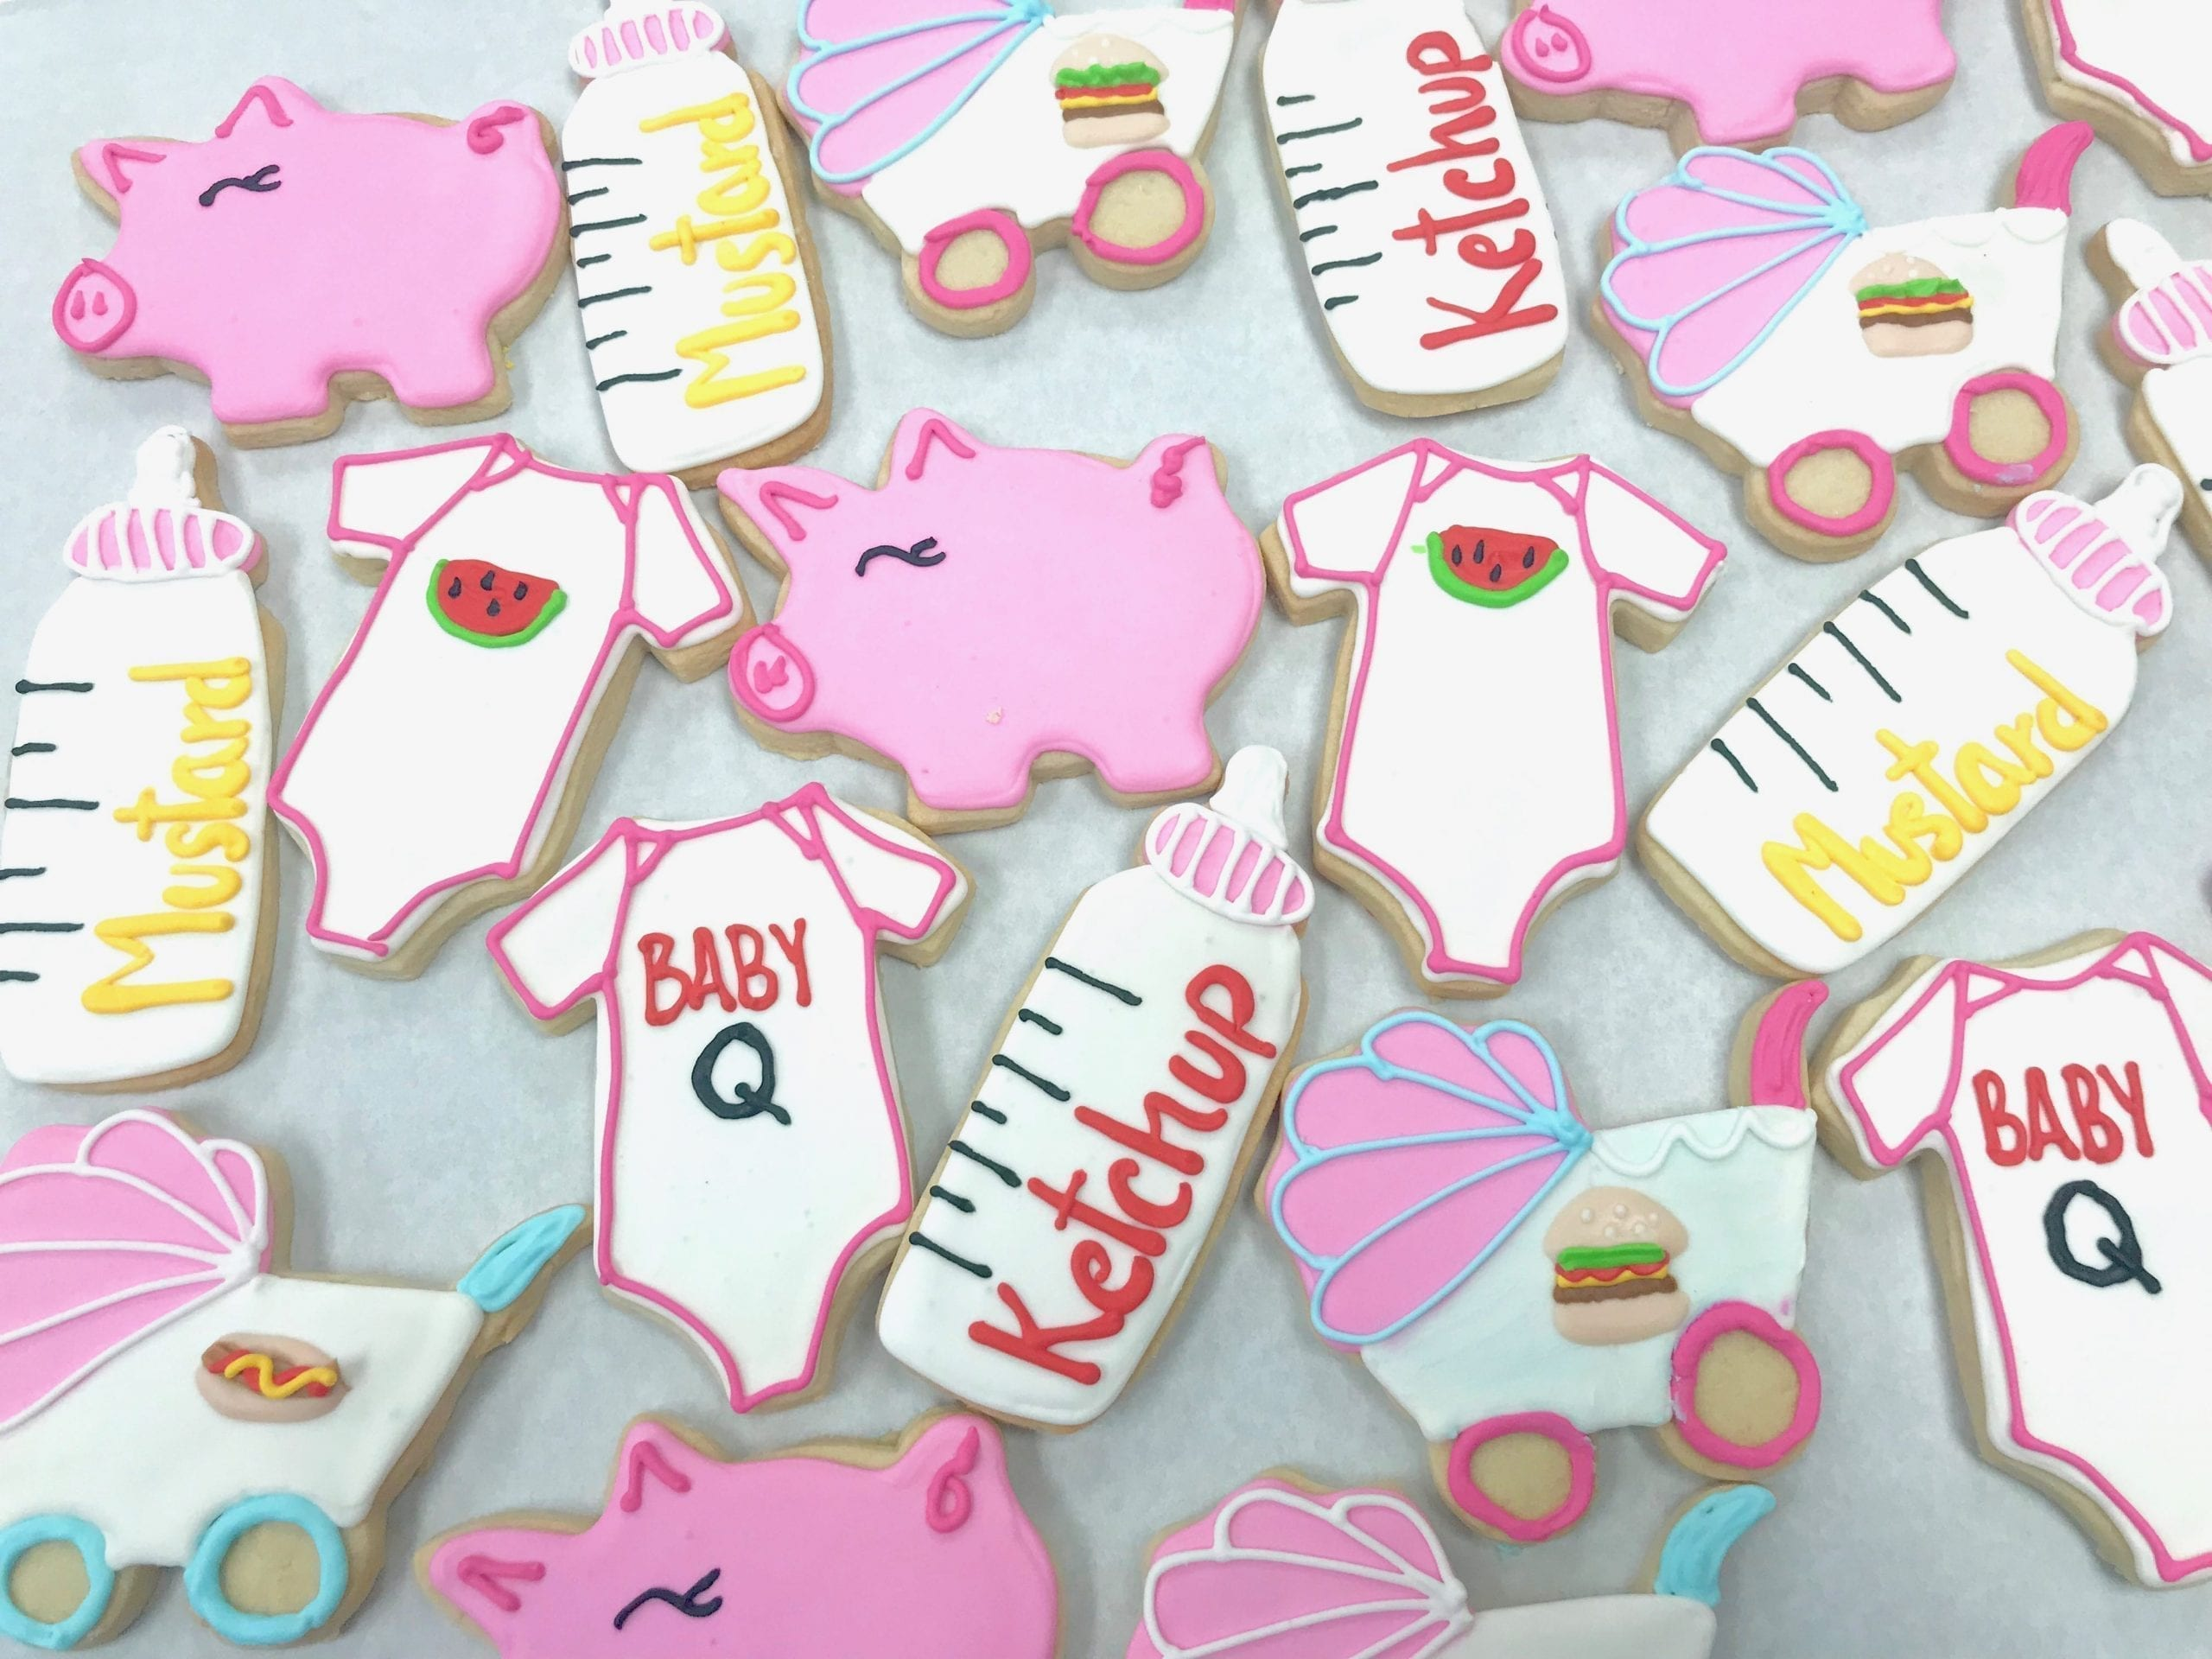 Baby Q Baby Shower Cookies | 3 Sweet Girls Cakery